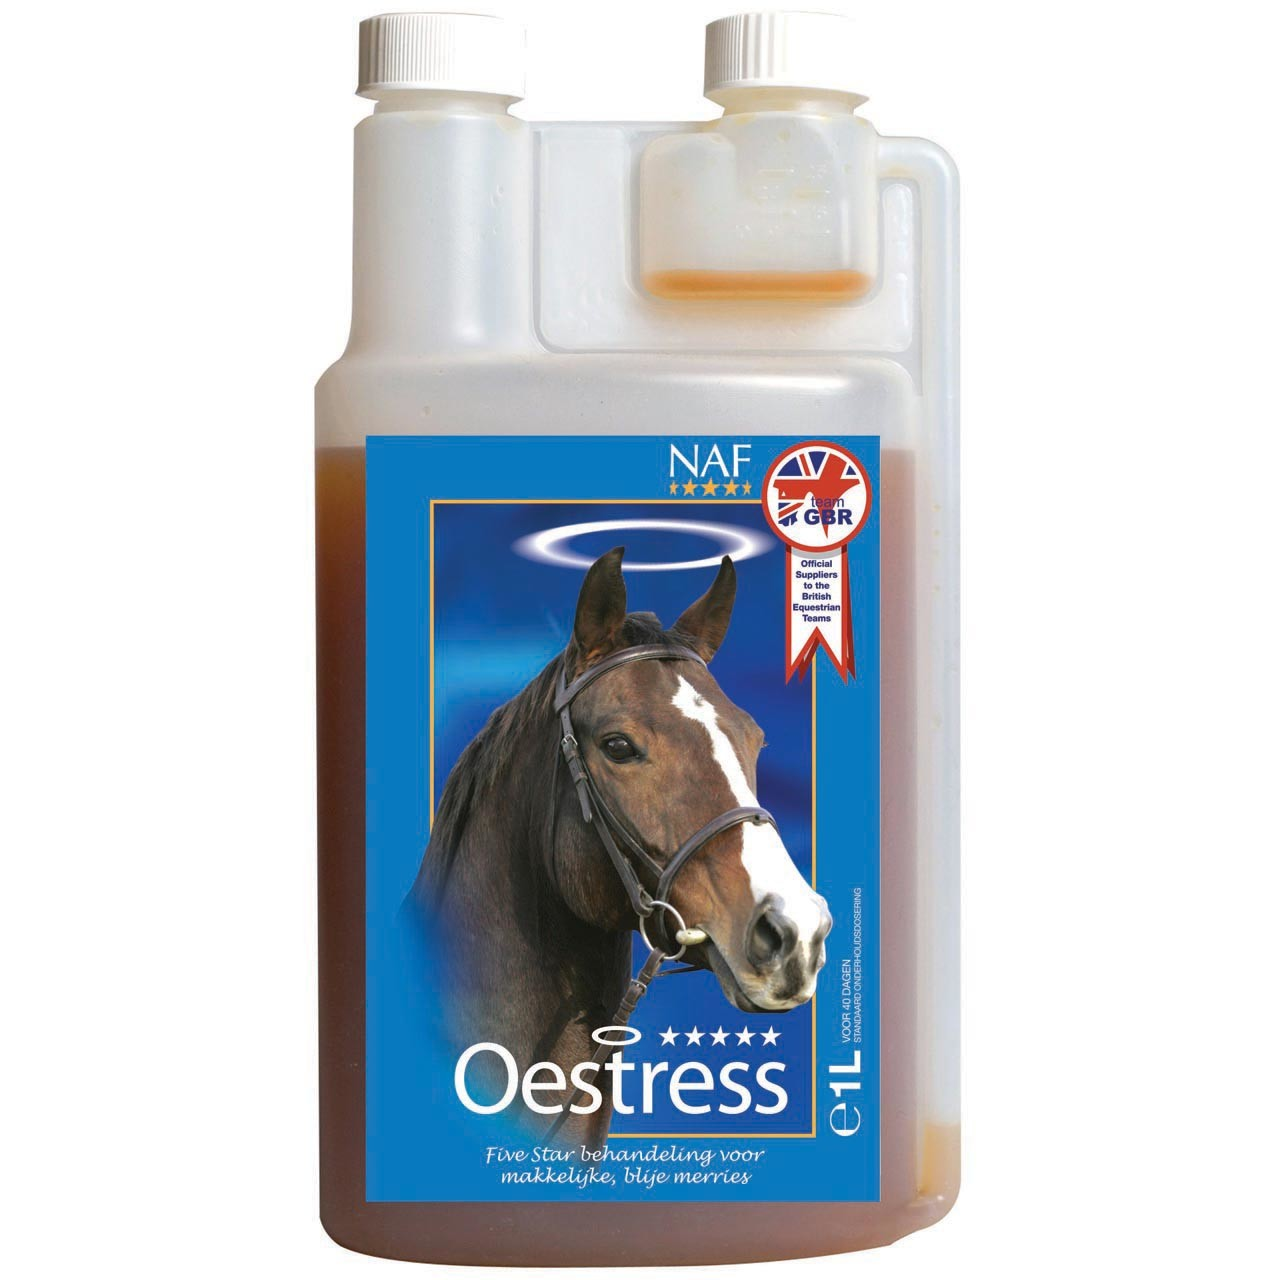 NAF Oestress Liquid liter